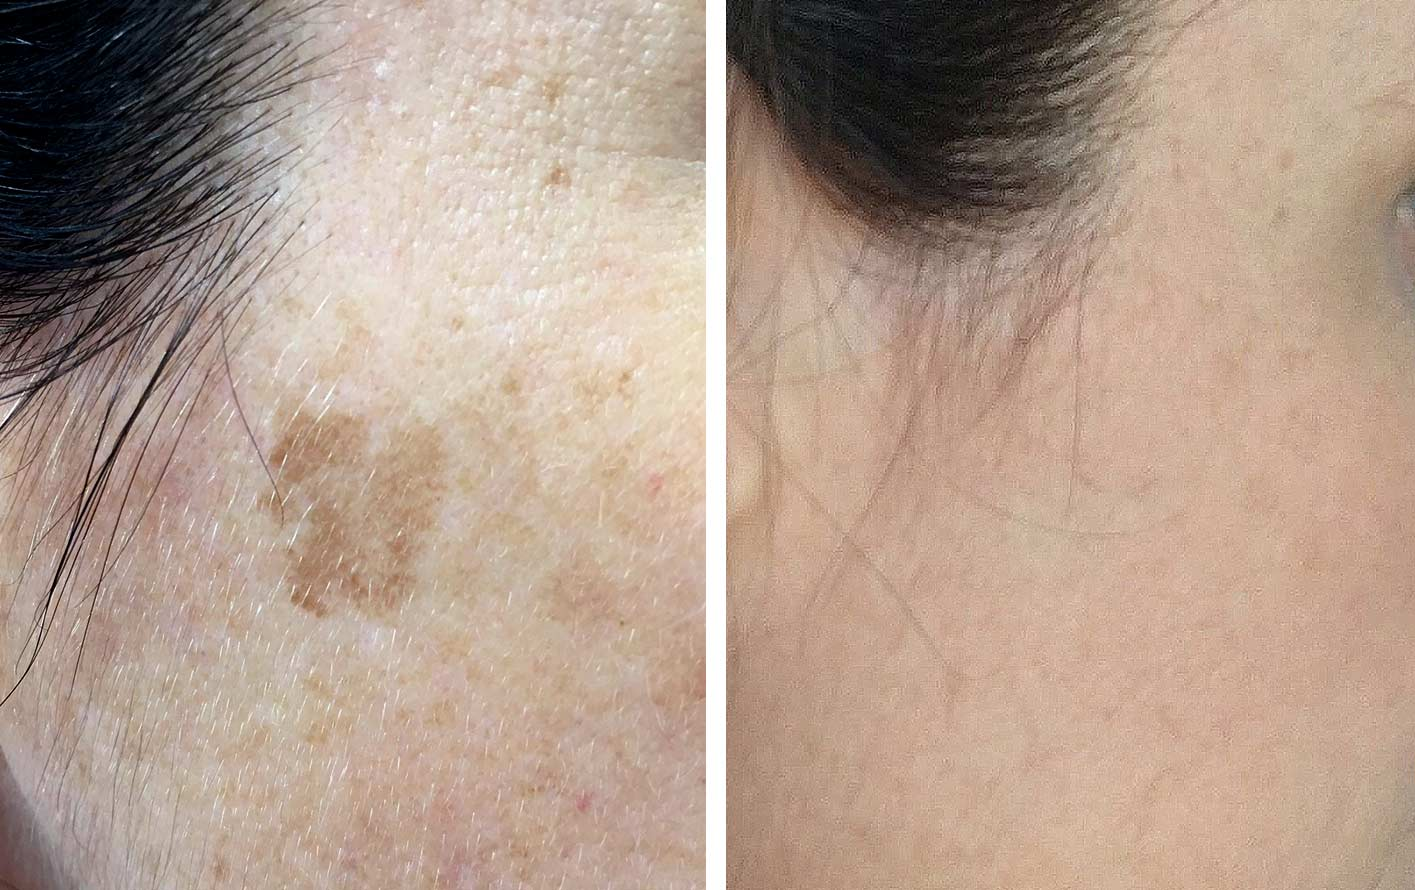 Before and after photo of treatment using the PicoWay Laser for removal of a facial age spot.